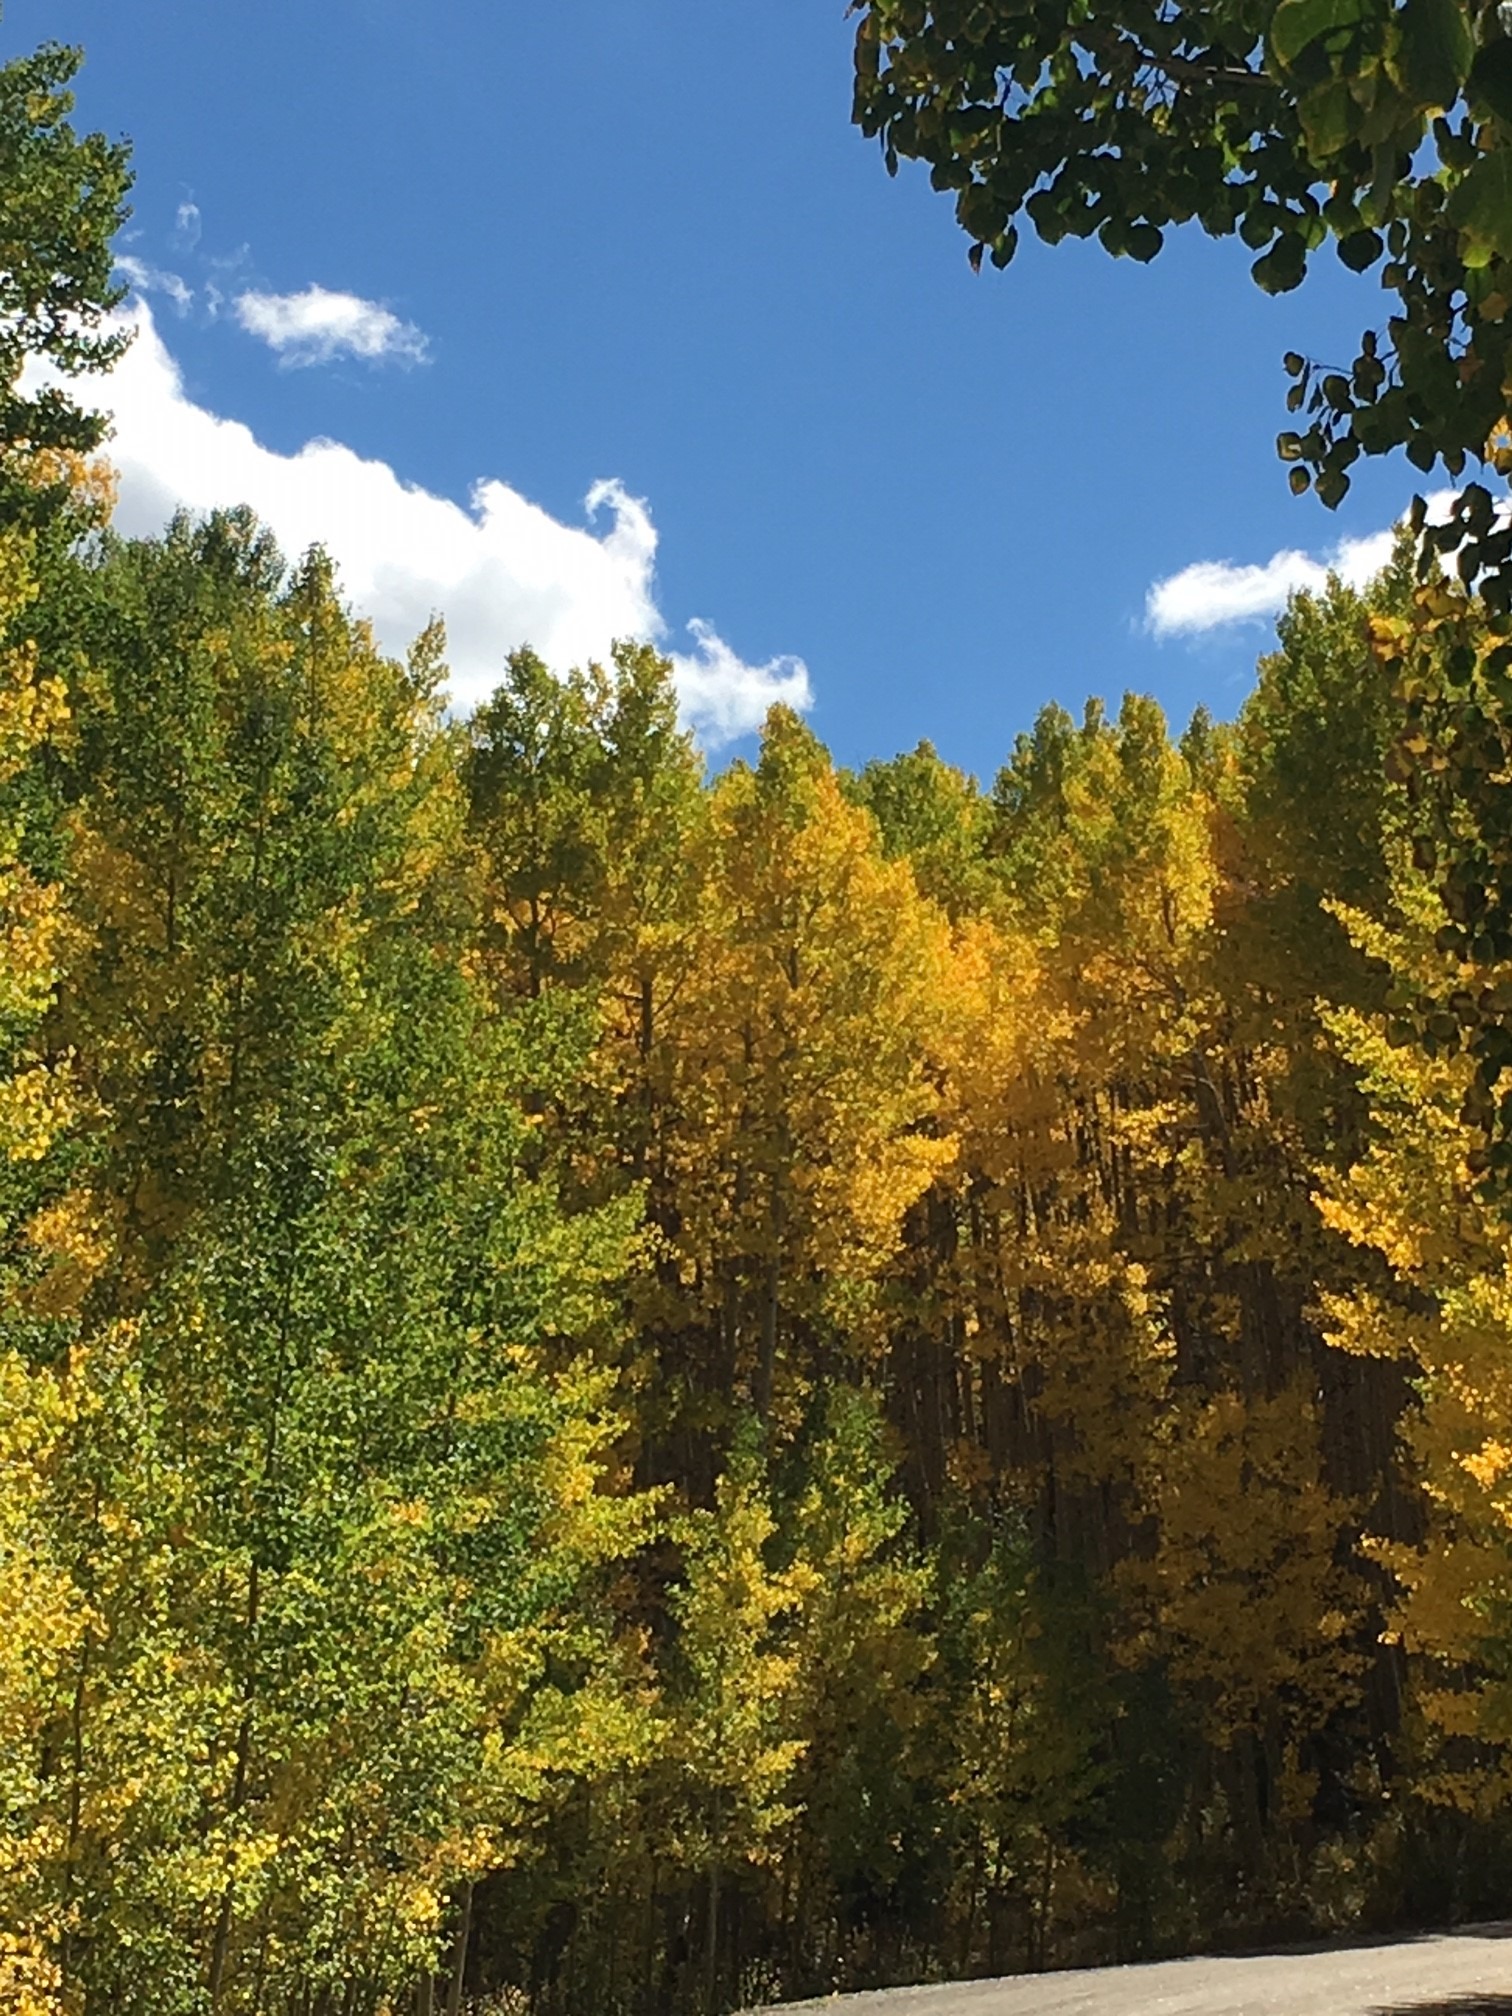 Amazing fall drives during our Fall Season!